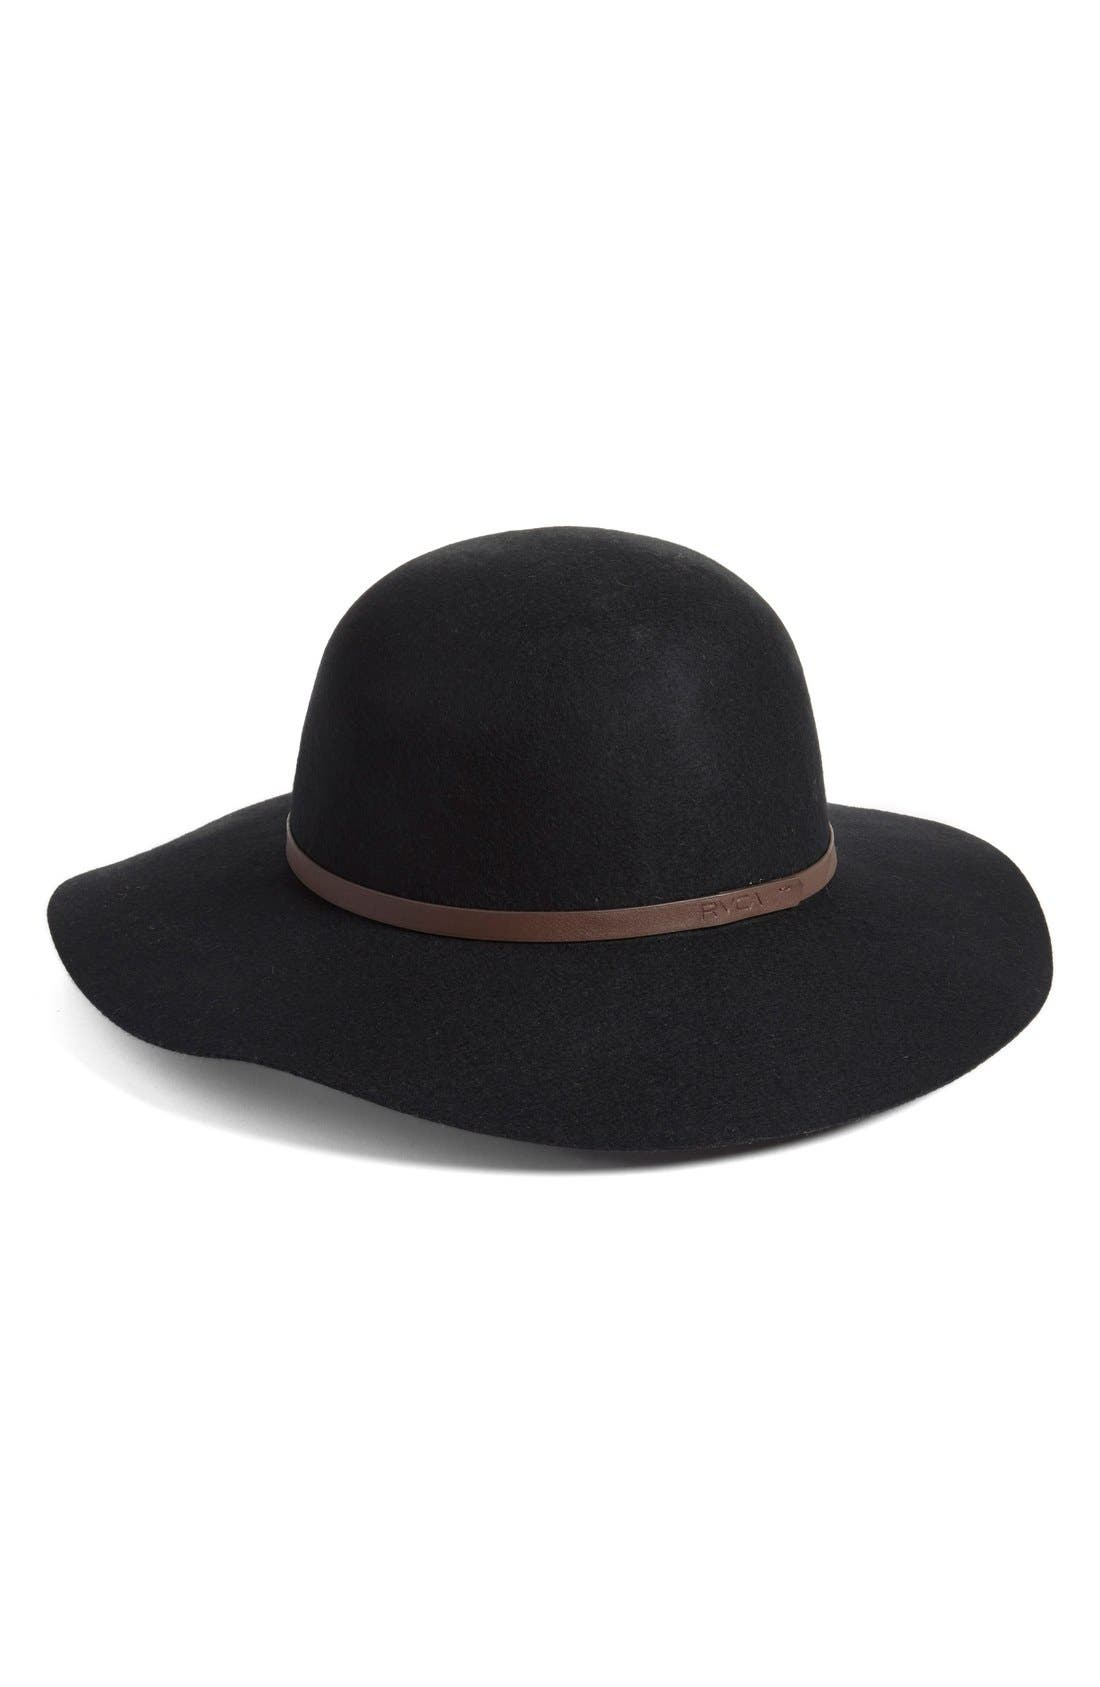 Alternate Image 1 Selected - RVCA 'Sunner' Wool Hat